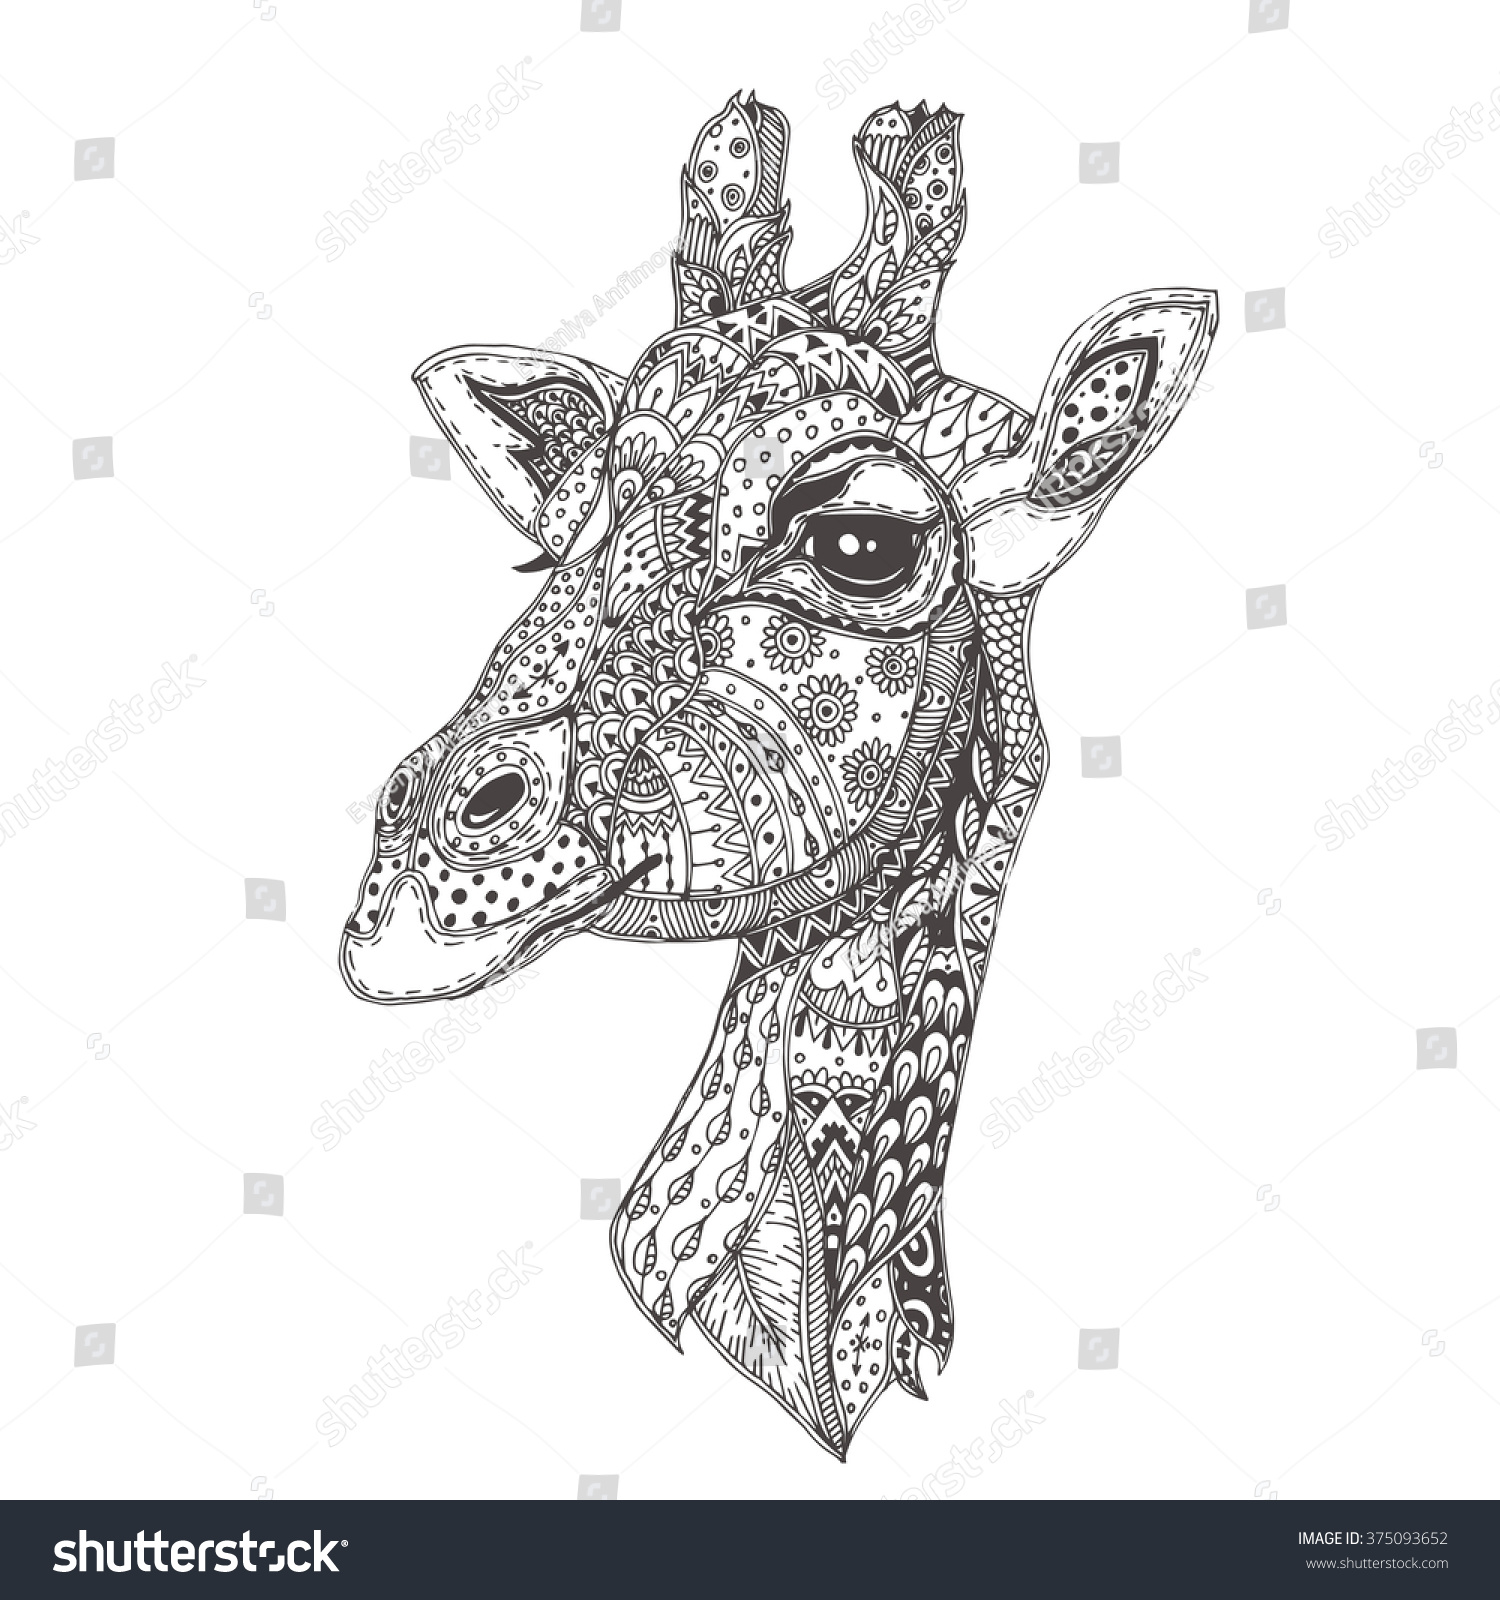 handdrawn giraffe ethnic floral doodle pattern stock vector